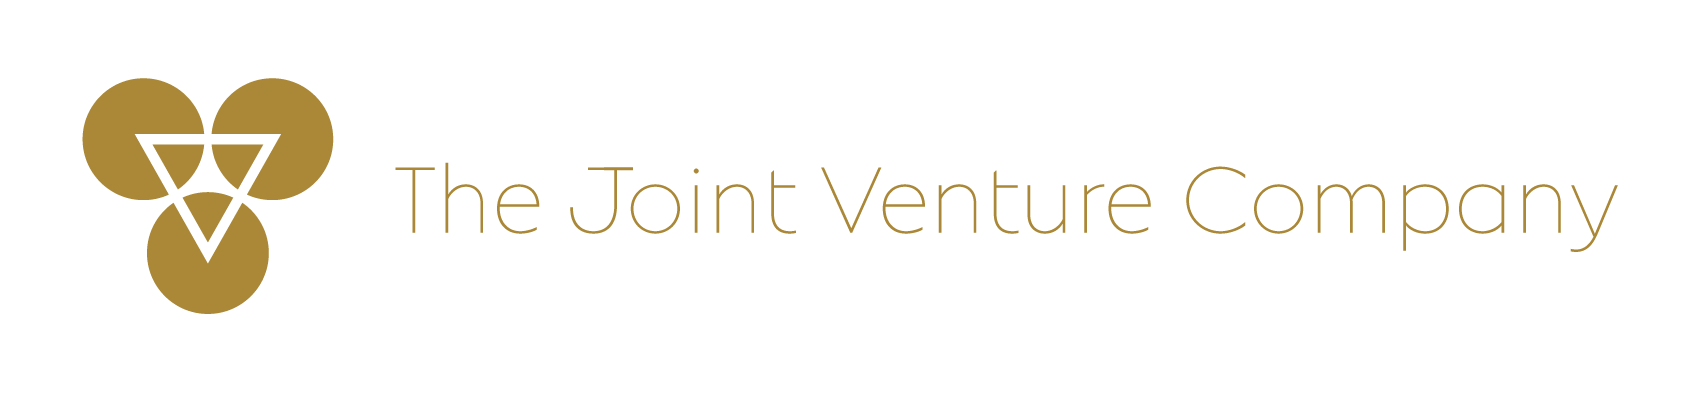 The Joint Venture Company